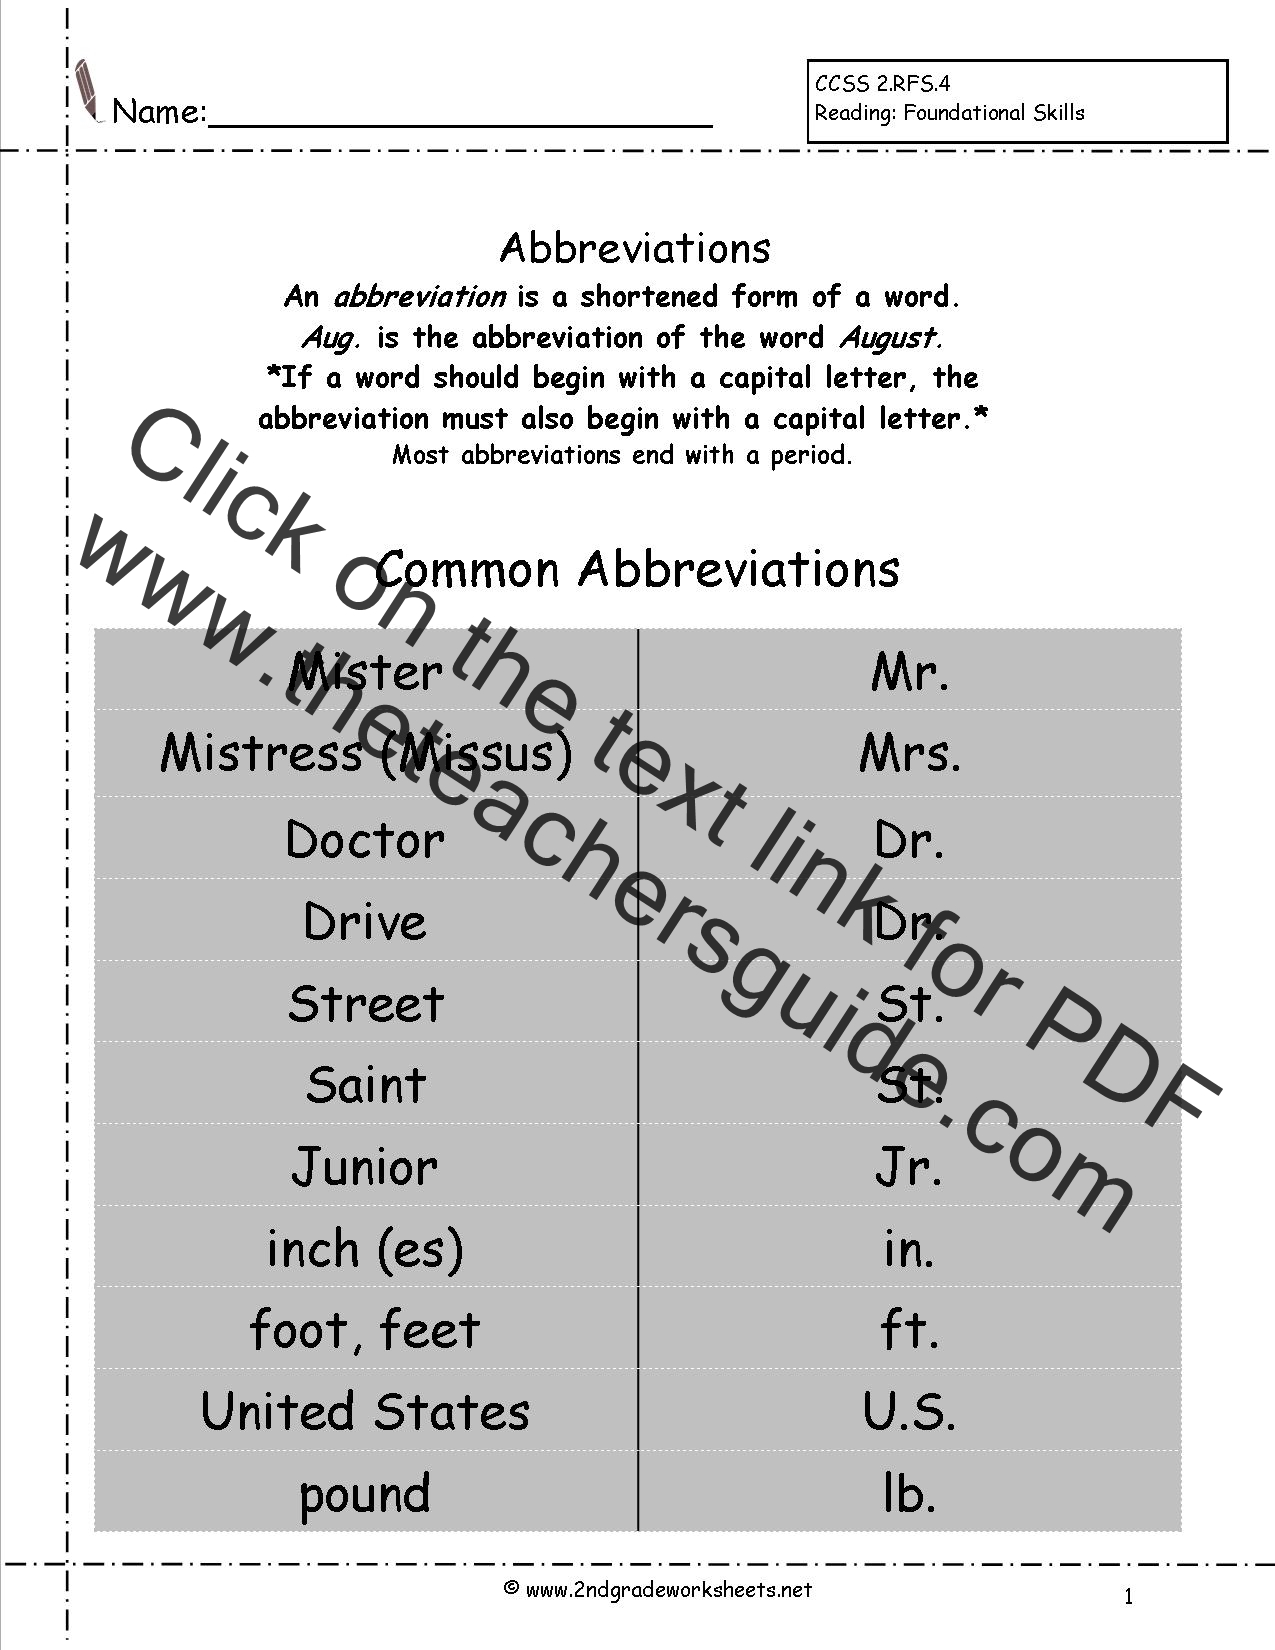 Worksheet Grammar Worksheets For 2nd Grade free languagegrammar worksheets and printouts abbreviaitons worksheets